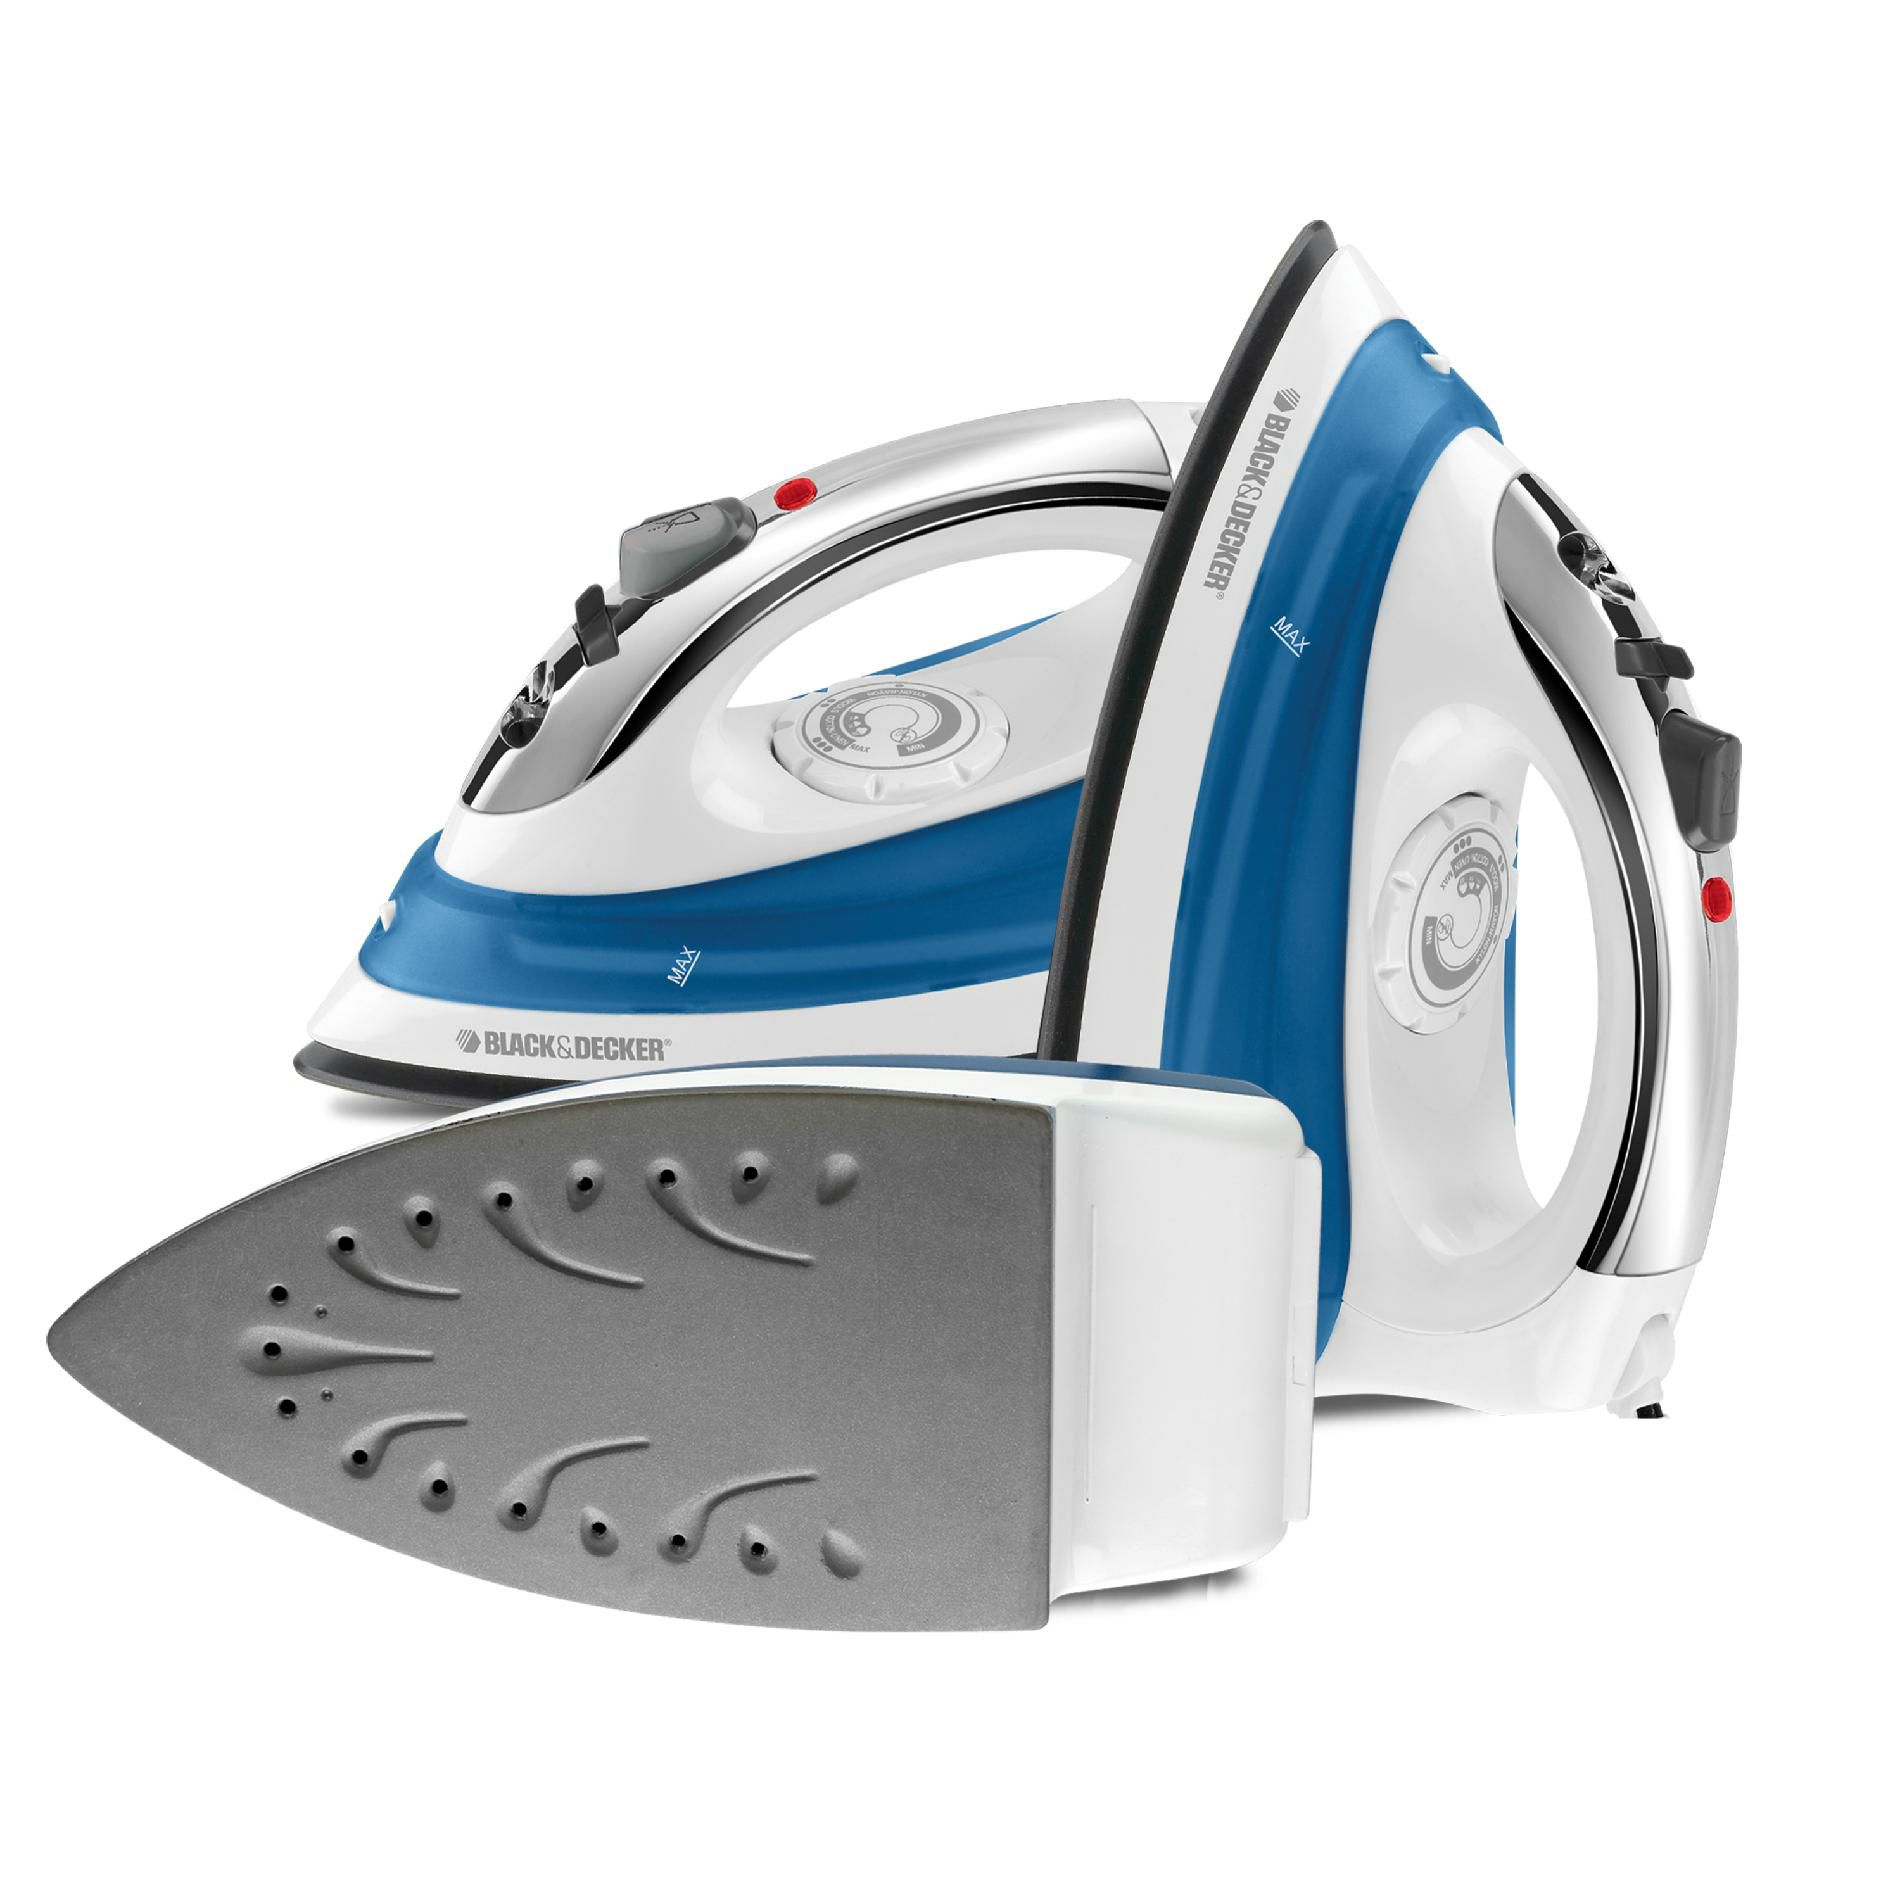 Black & Decker Quick N' Easy Steam Iron